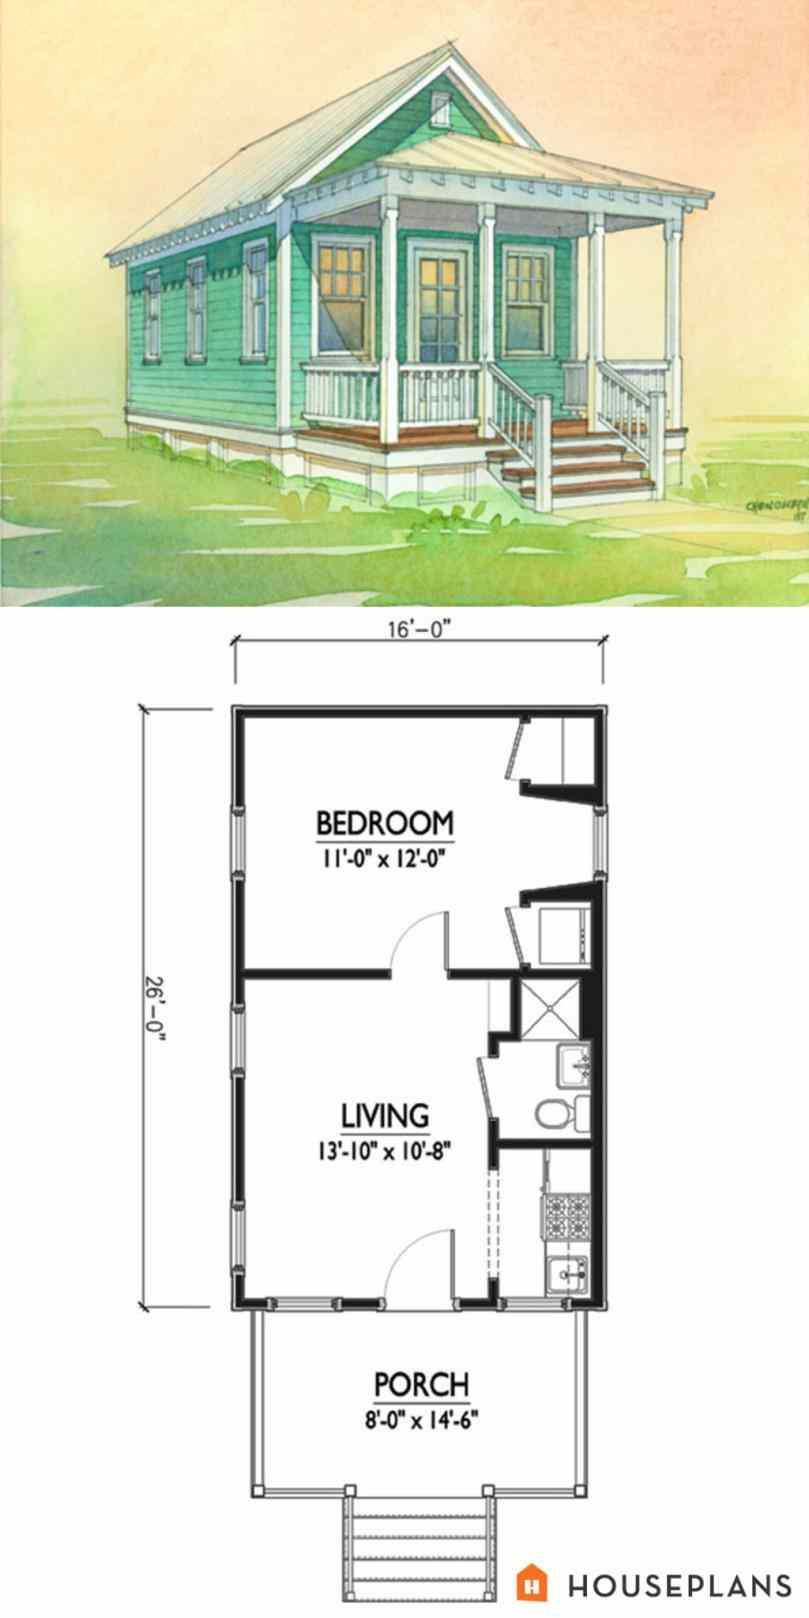 Small House Building Plans Fresh Tiny House Floor Plans 10x12 Architectural Designs Cafe